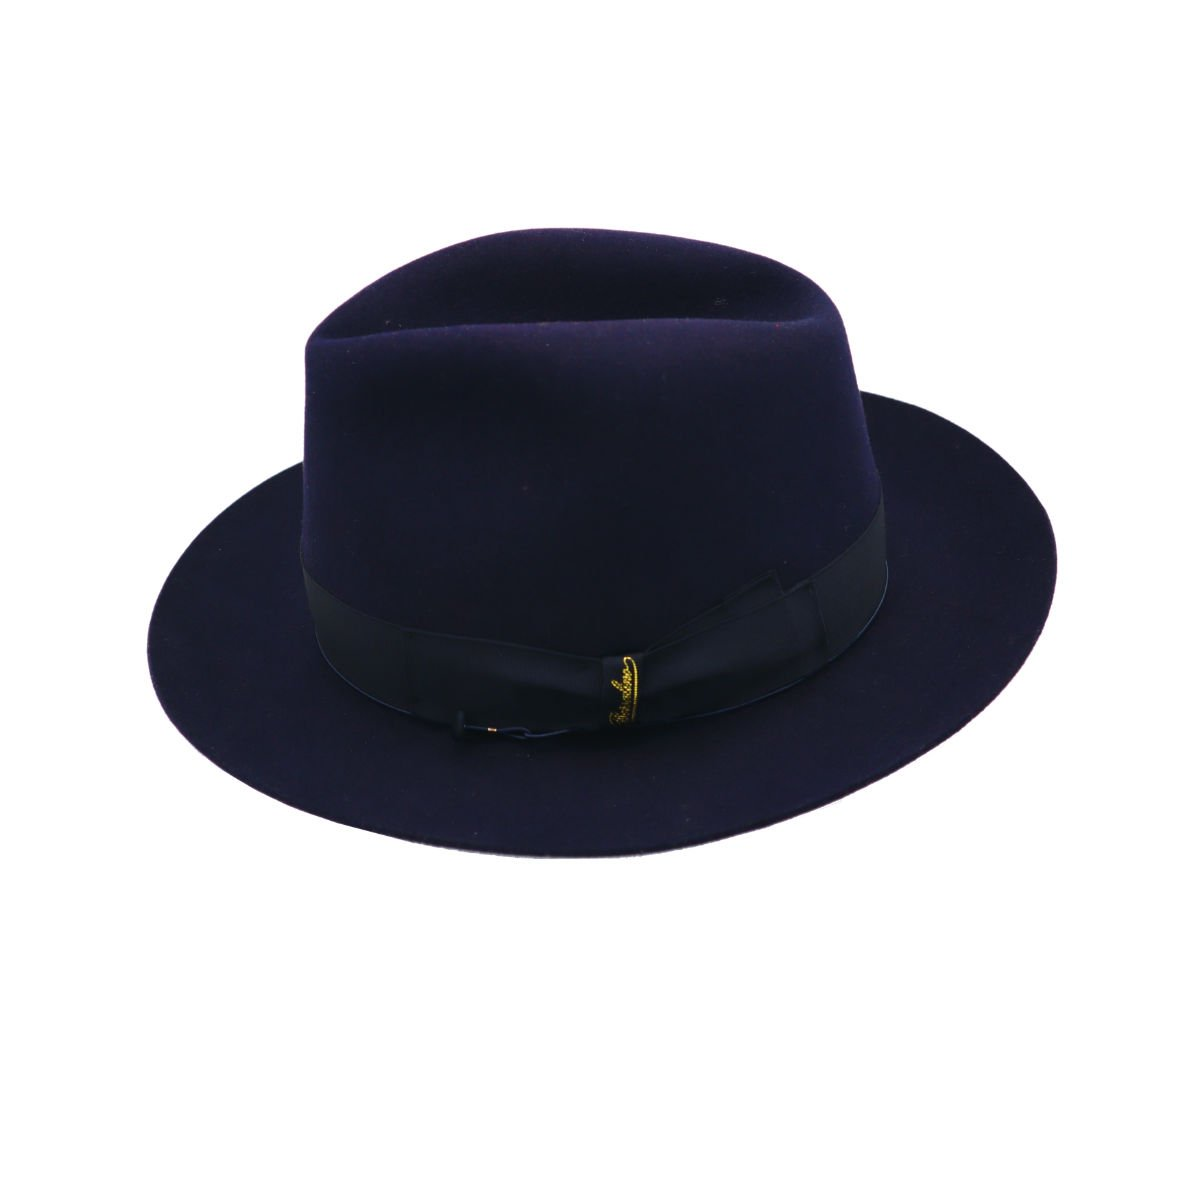 Bogaert hoed nightblue Borsalino side shot